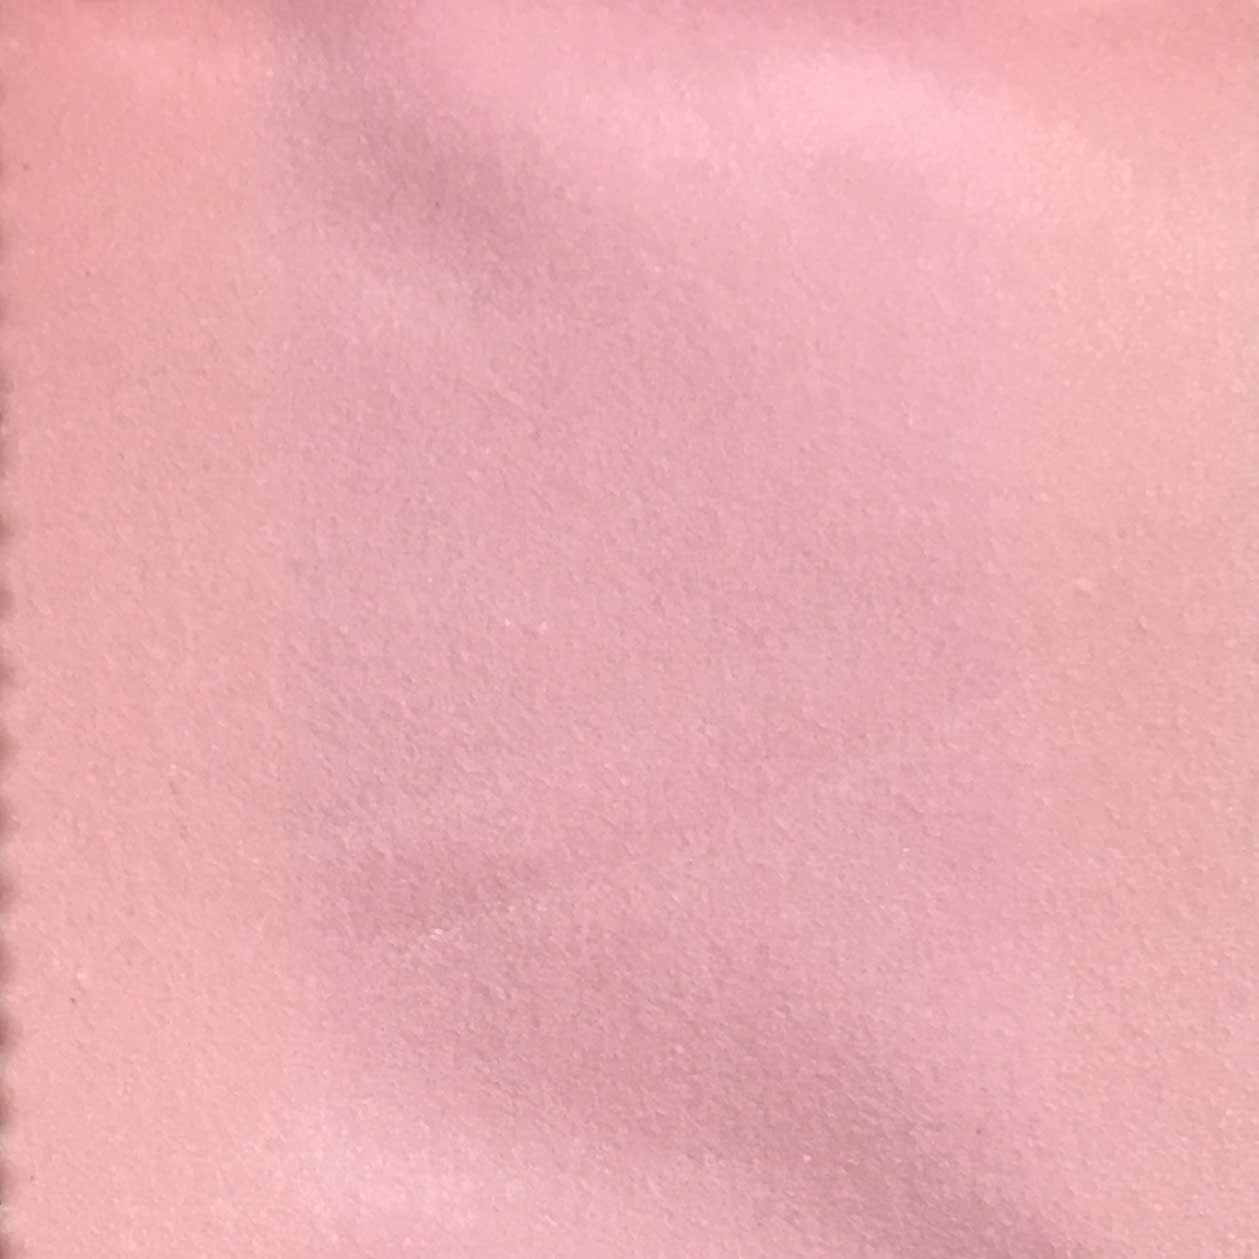 Home Decor Fabrics By The Yard pink rose fabric by the yard shabby n chic home decor fabric for pillows or Bowie 100 Cotton Velvet Upholstery Fabric By The Yard Available In 77 Colors